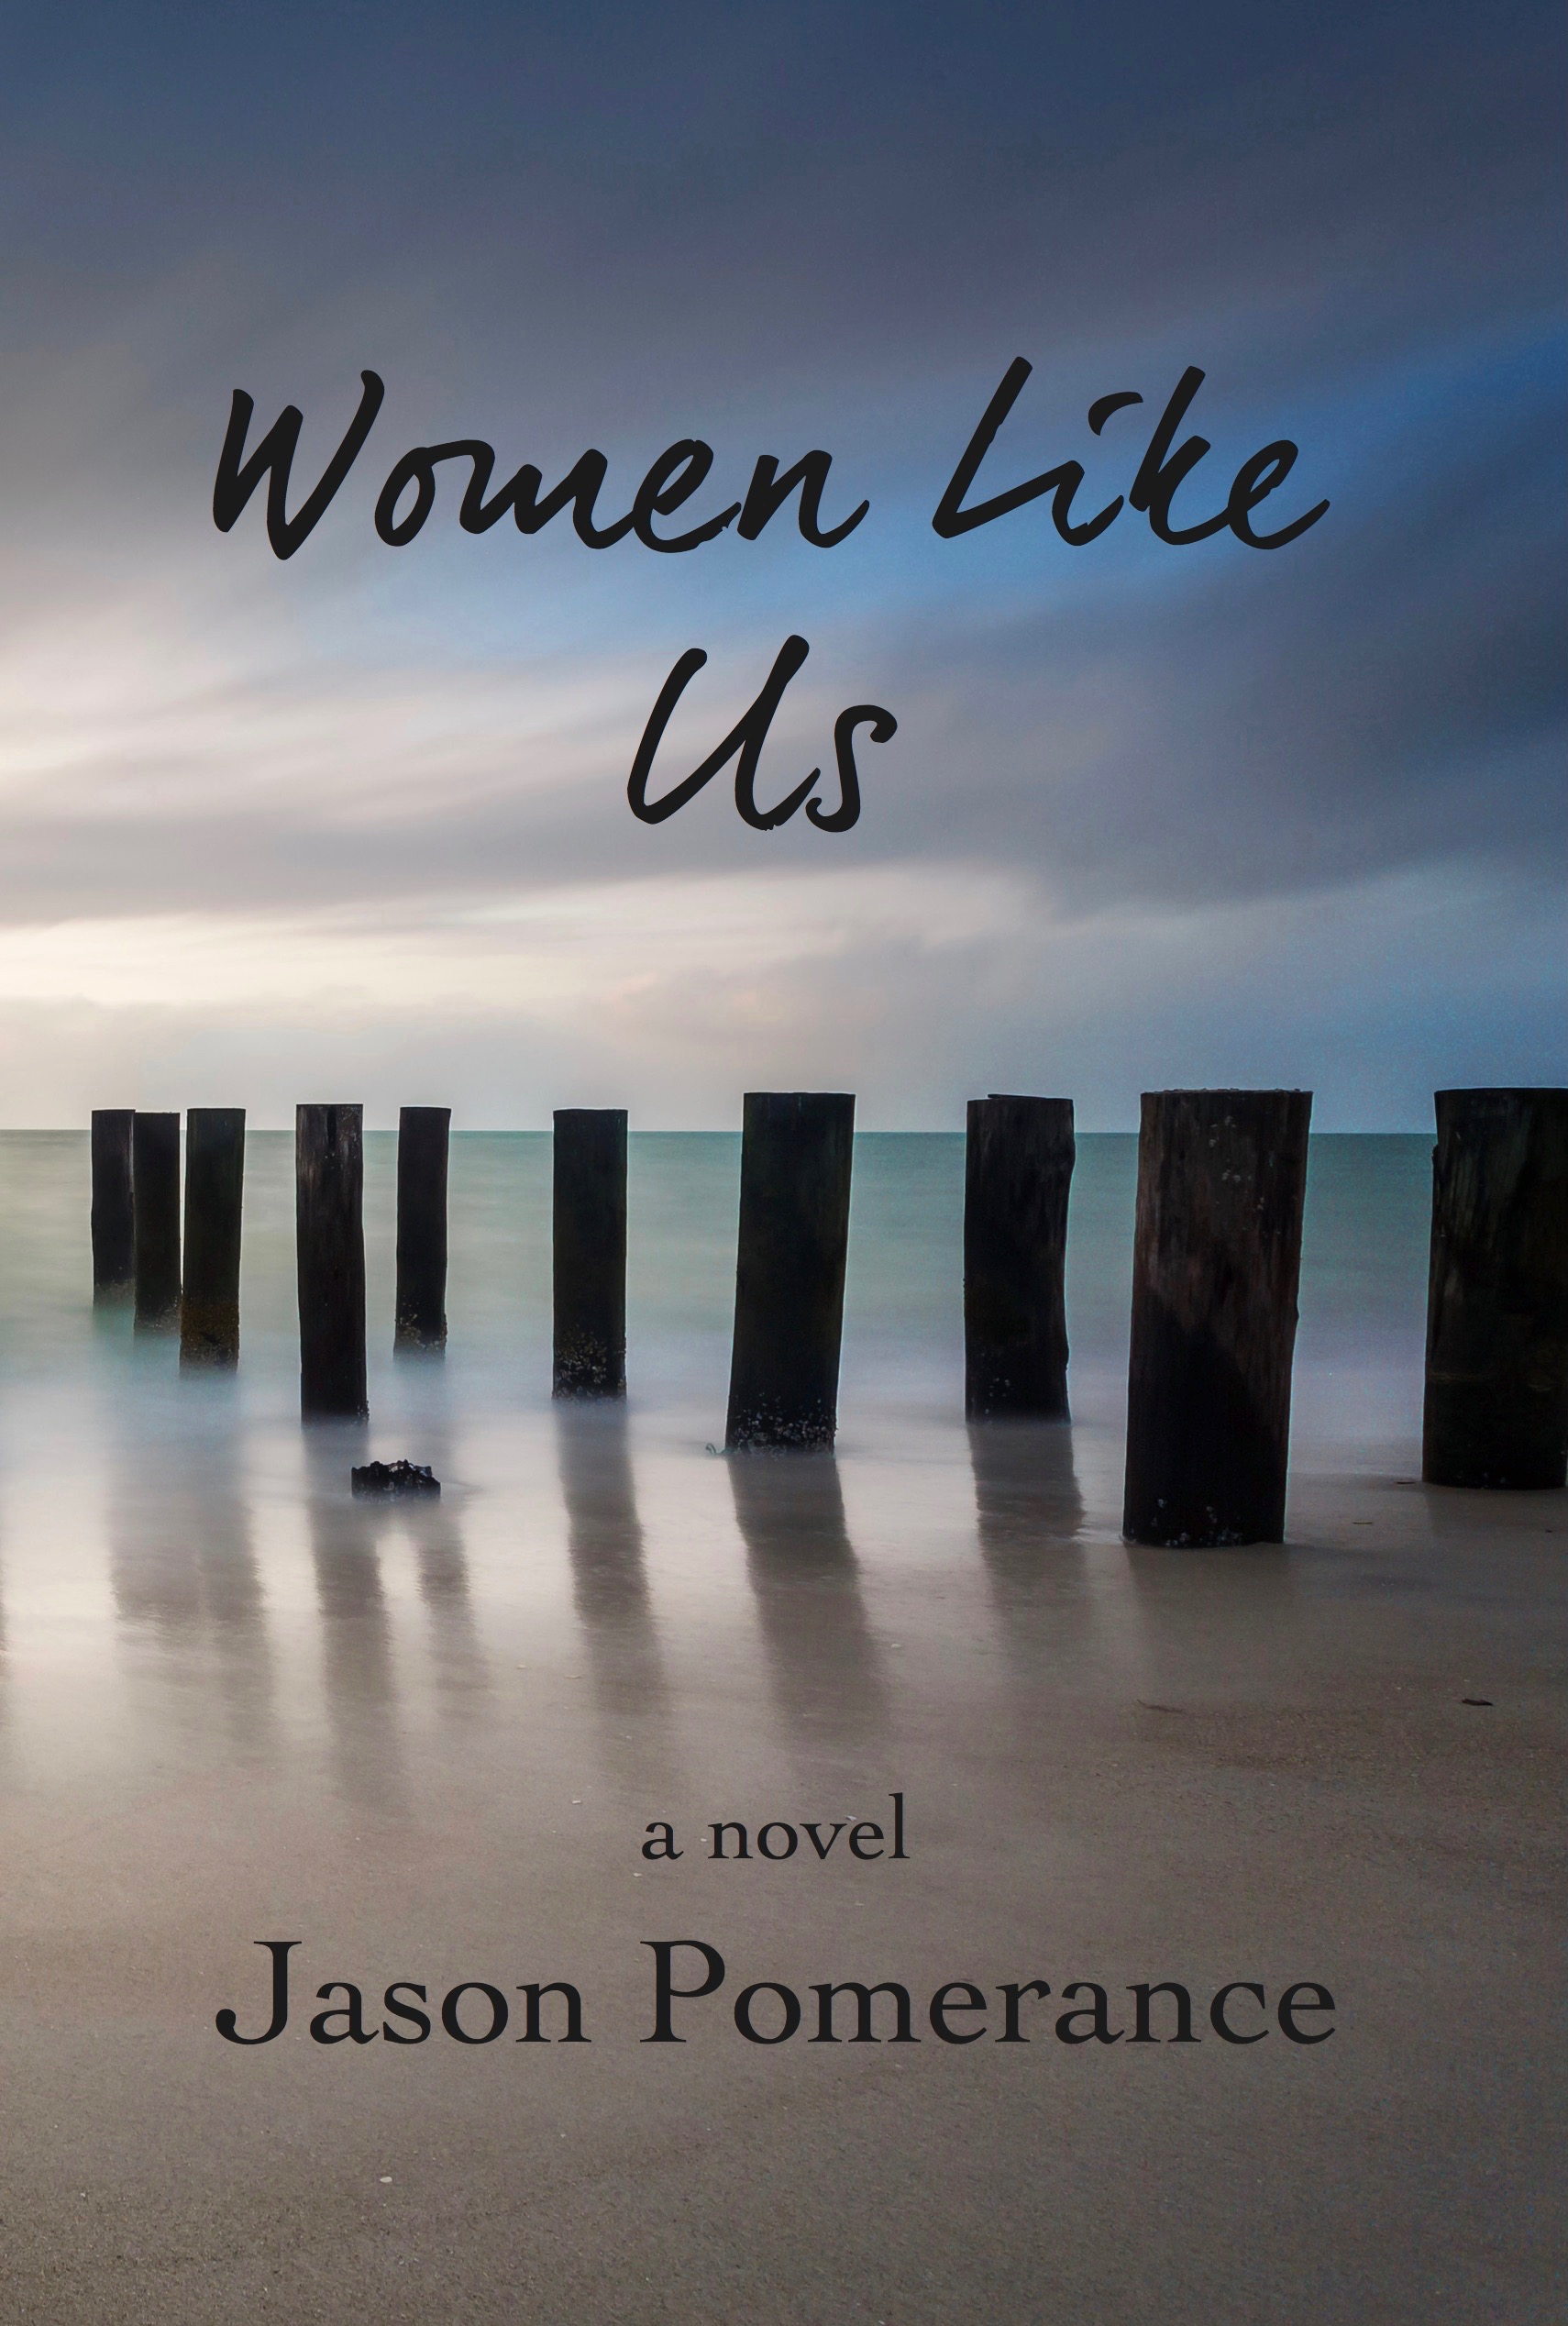 Click here to purchase Women Like Us